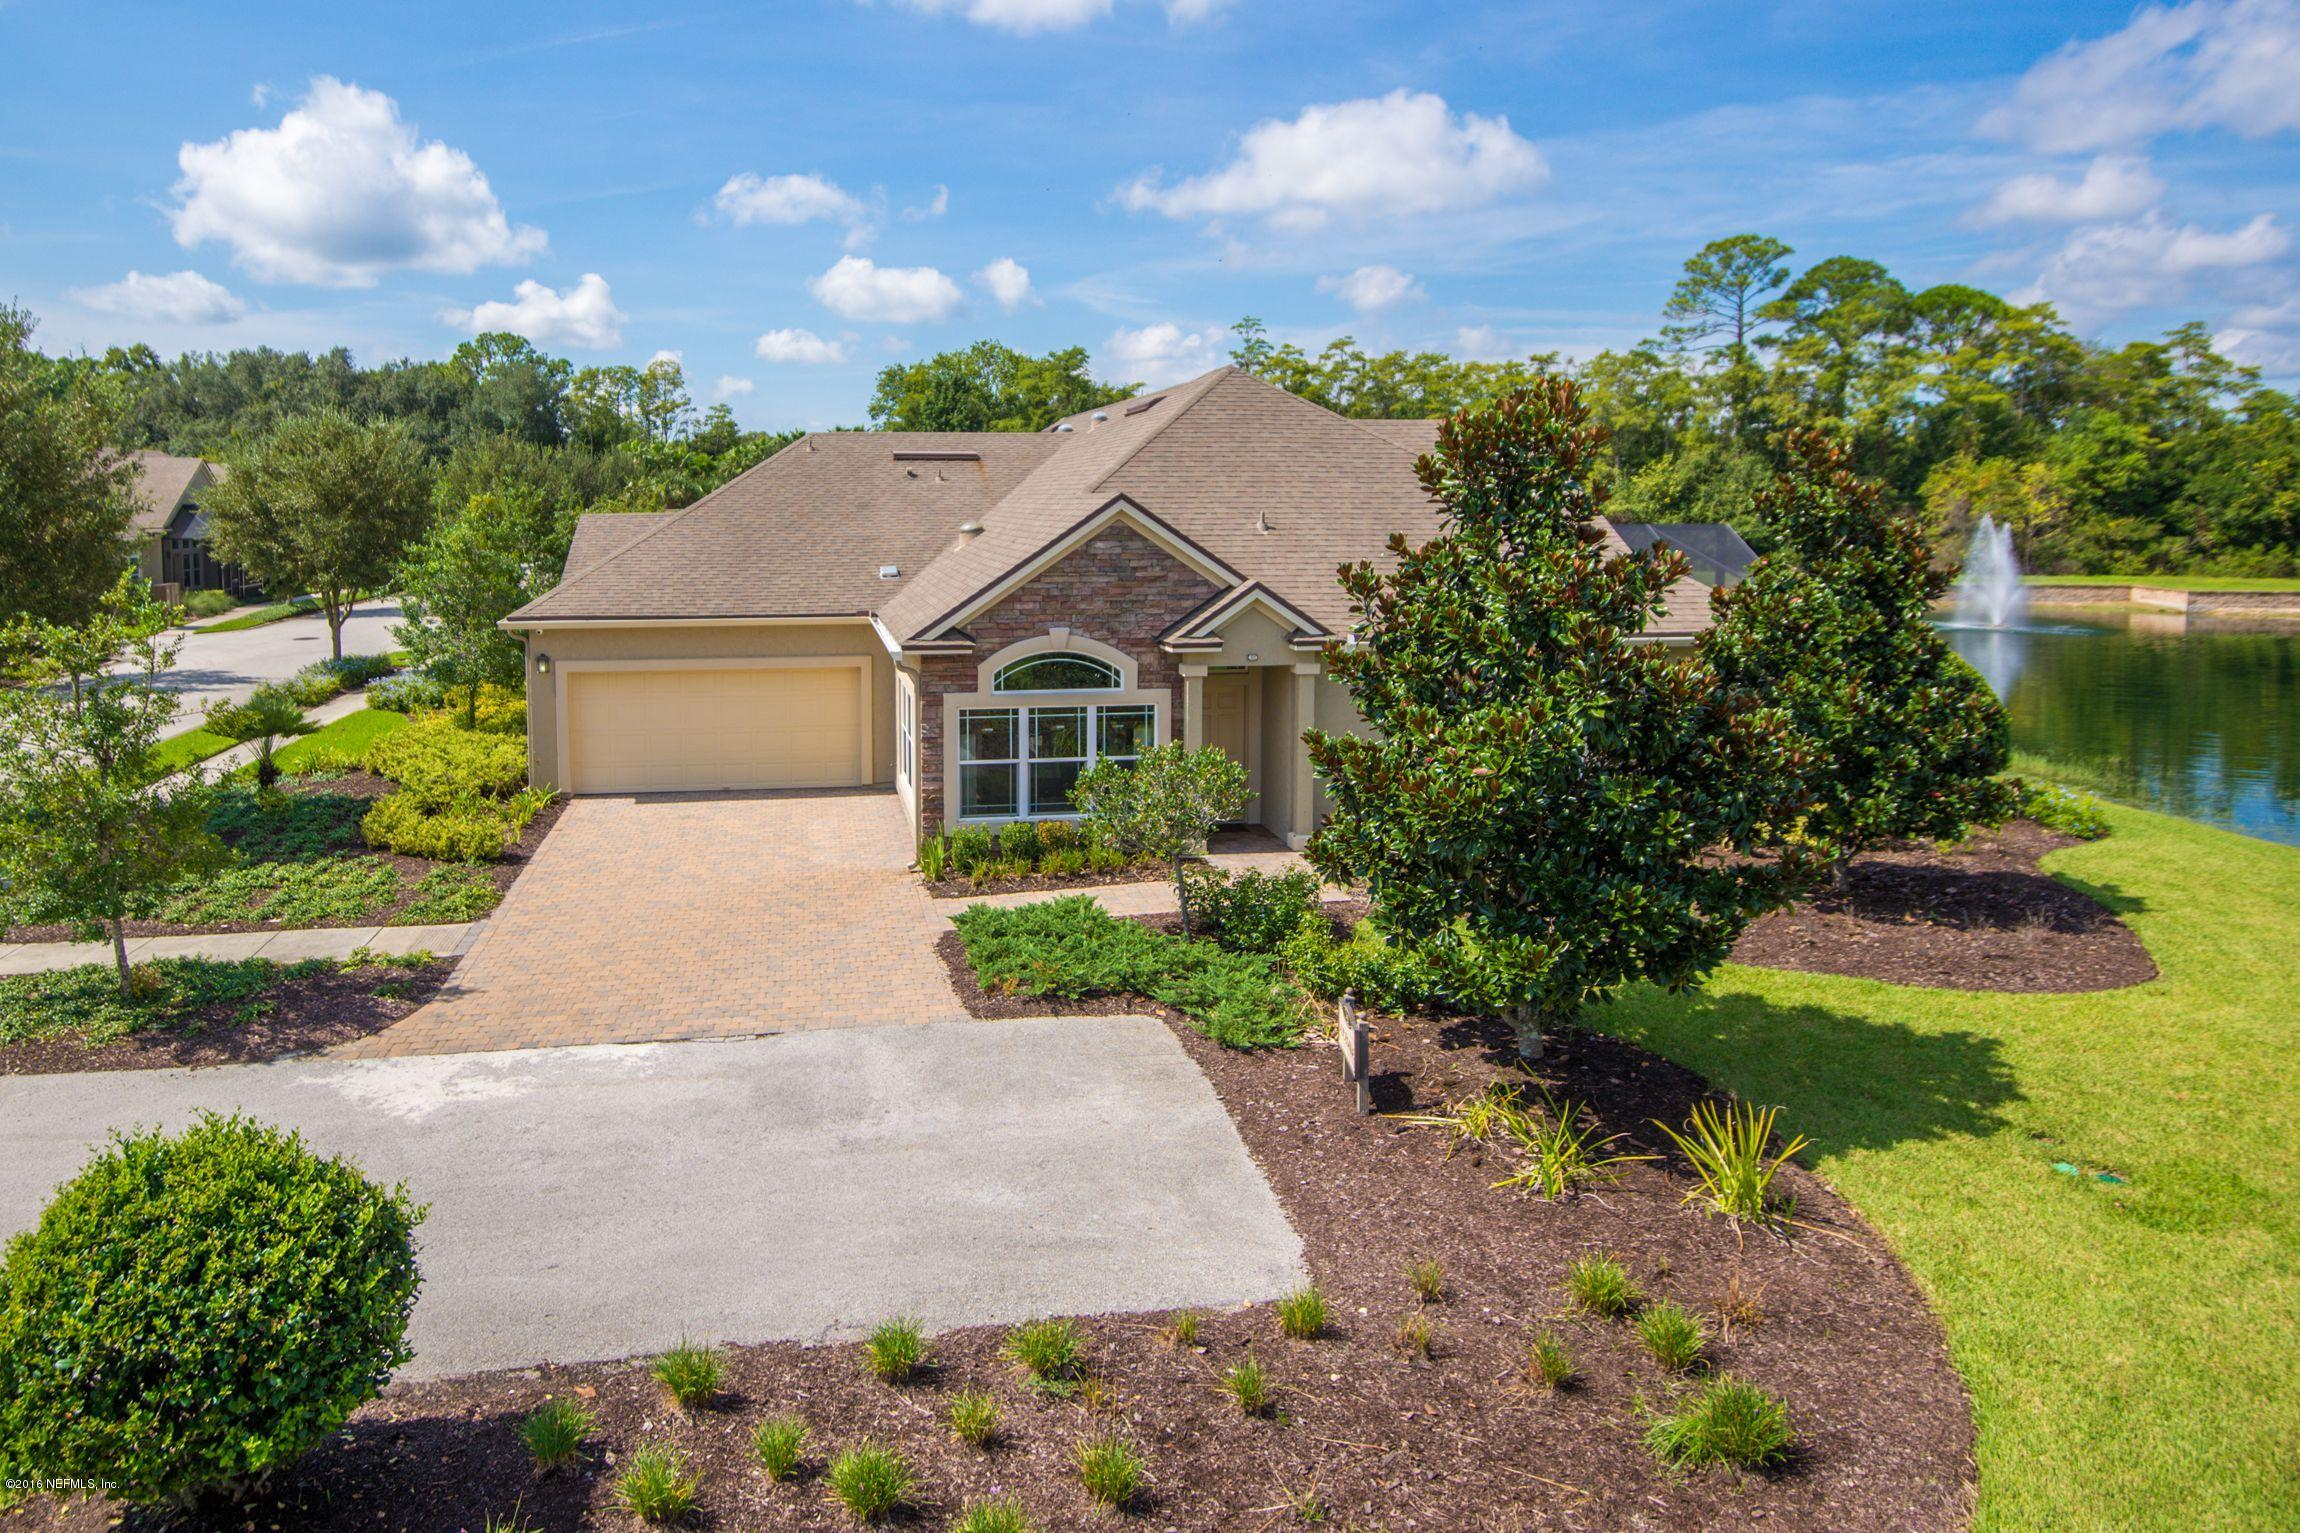 31 AMACANO, ST AUGUSTINE, FLORIDA 32084, 2 Bedrooms Bedrooms, ,2 BathroomsBathrooms,Residential - condos/townhomes,For sale,AMACANO,921934